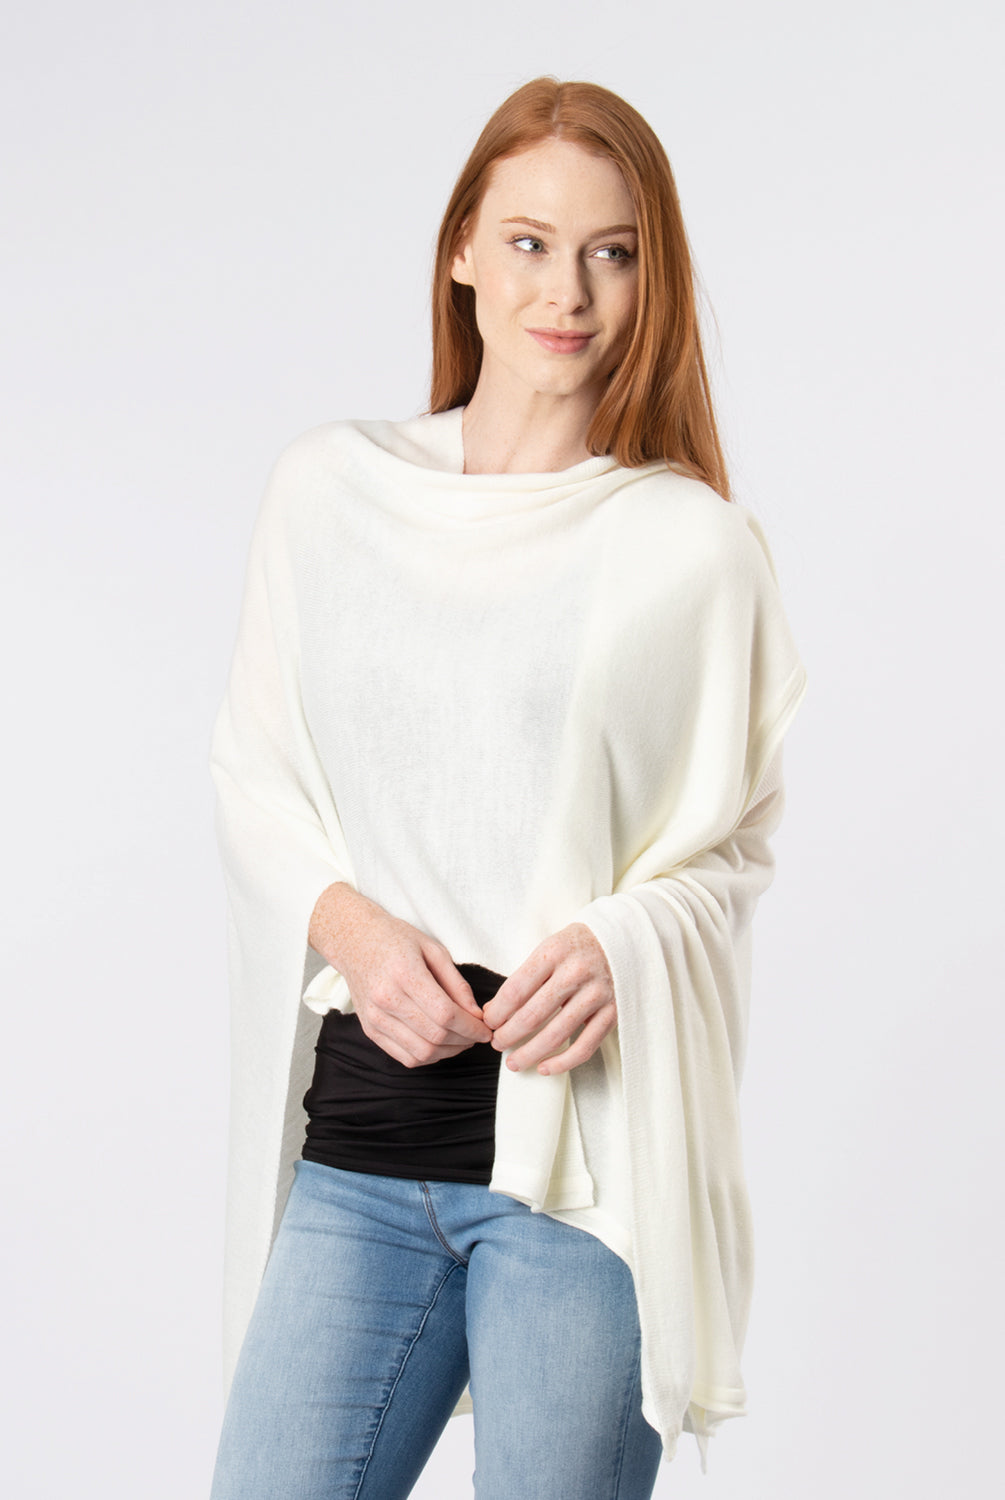 Simply Noelle Bordeaux Wrap Shawl Poncho Ivory One Size